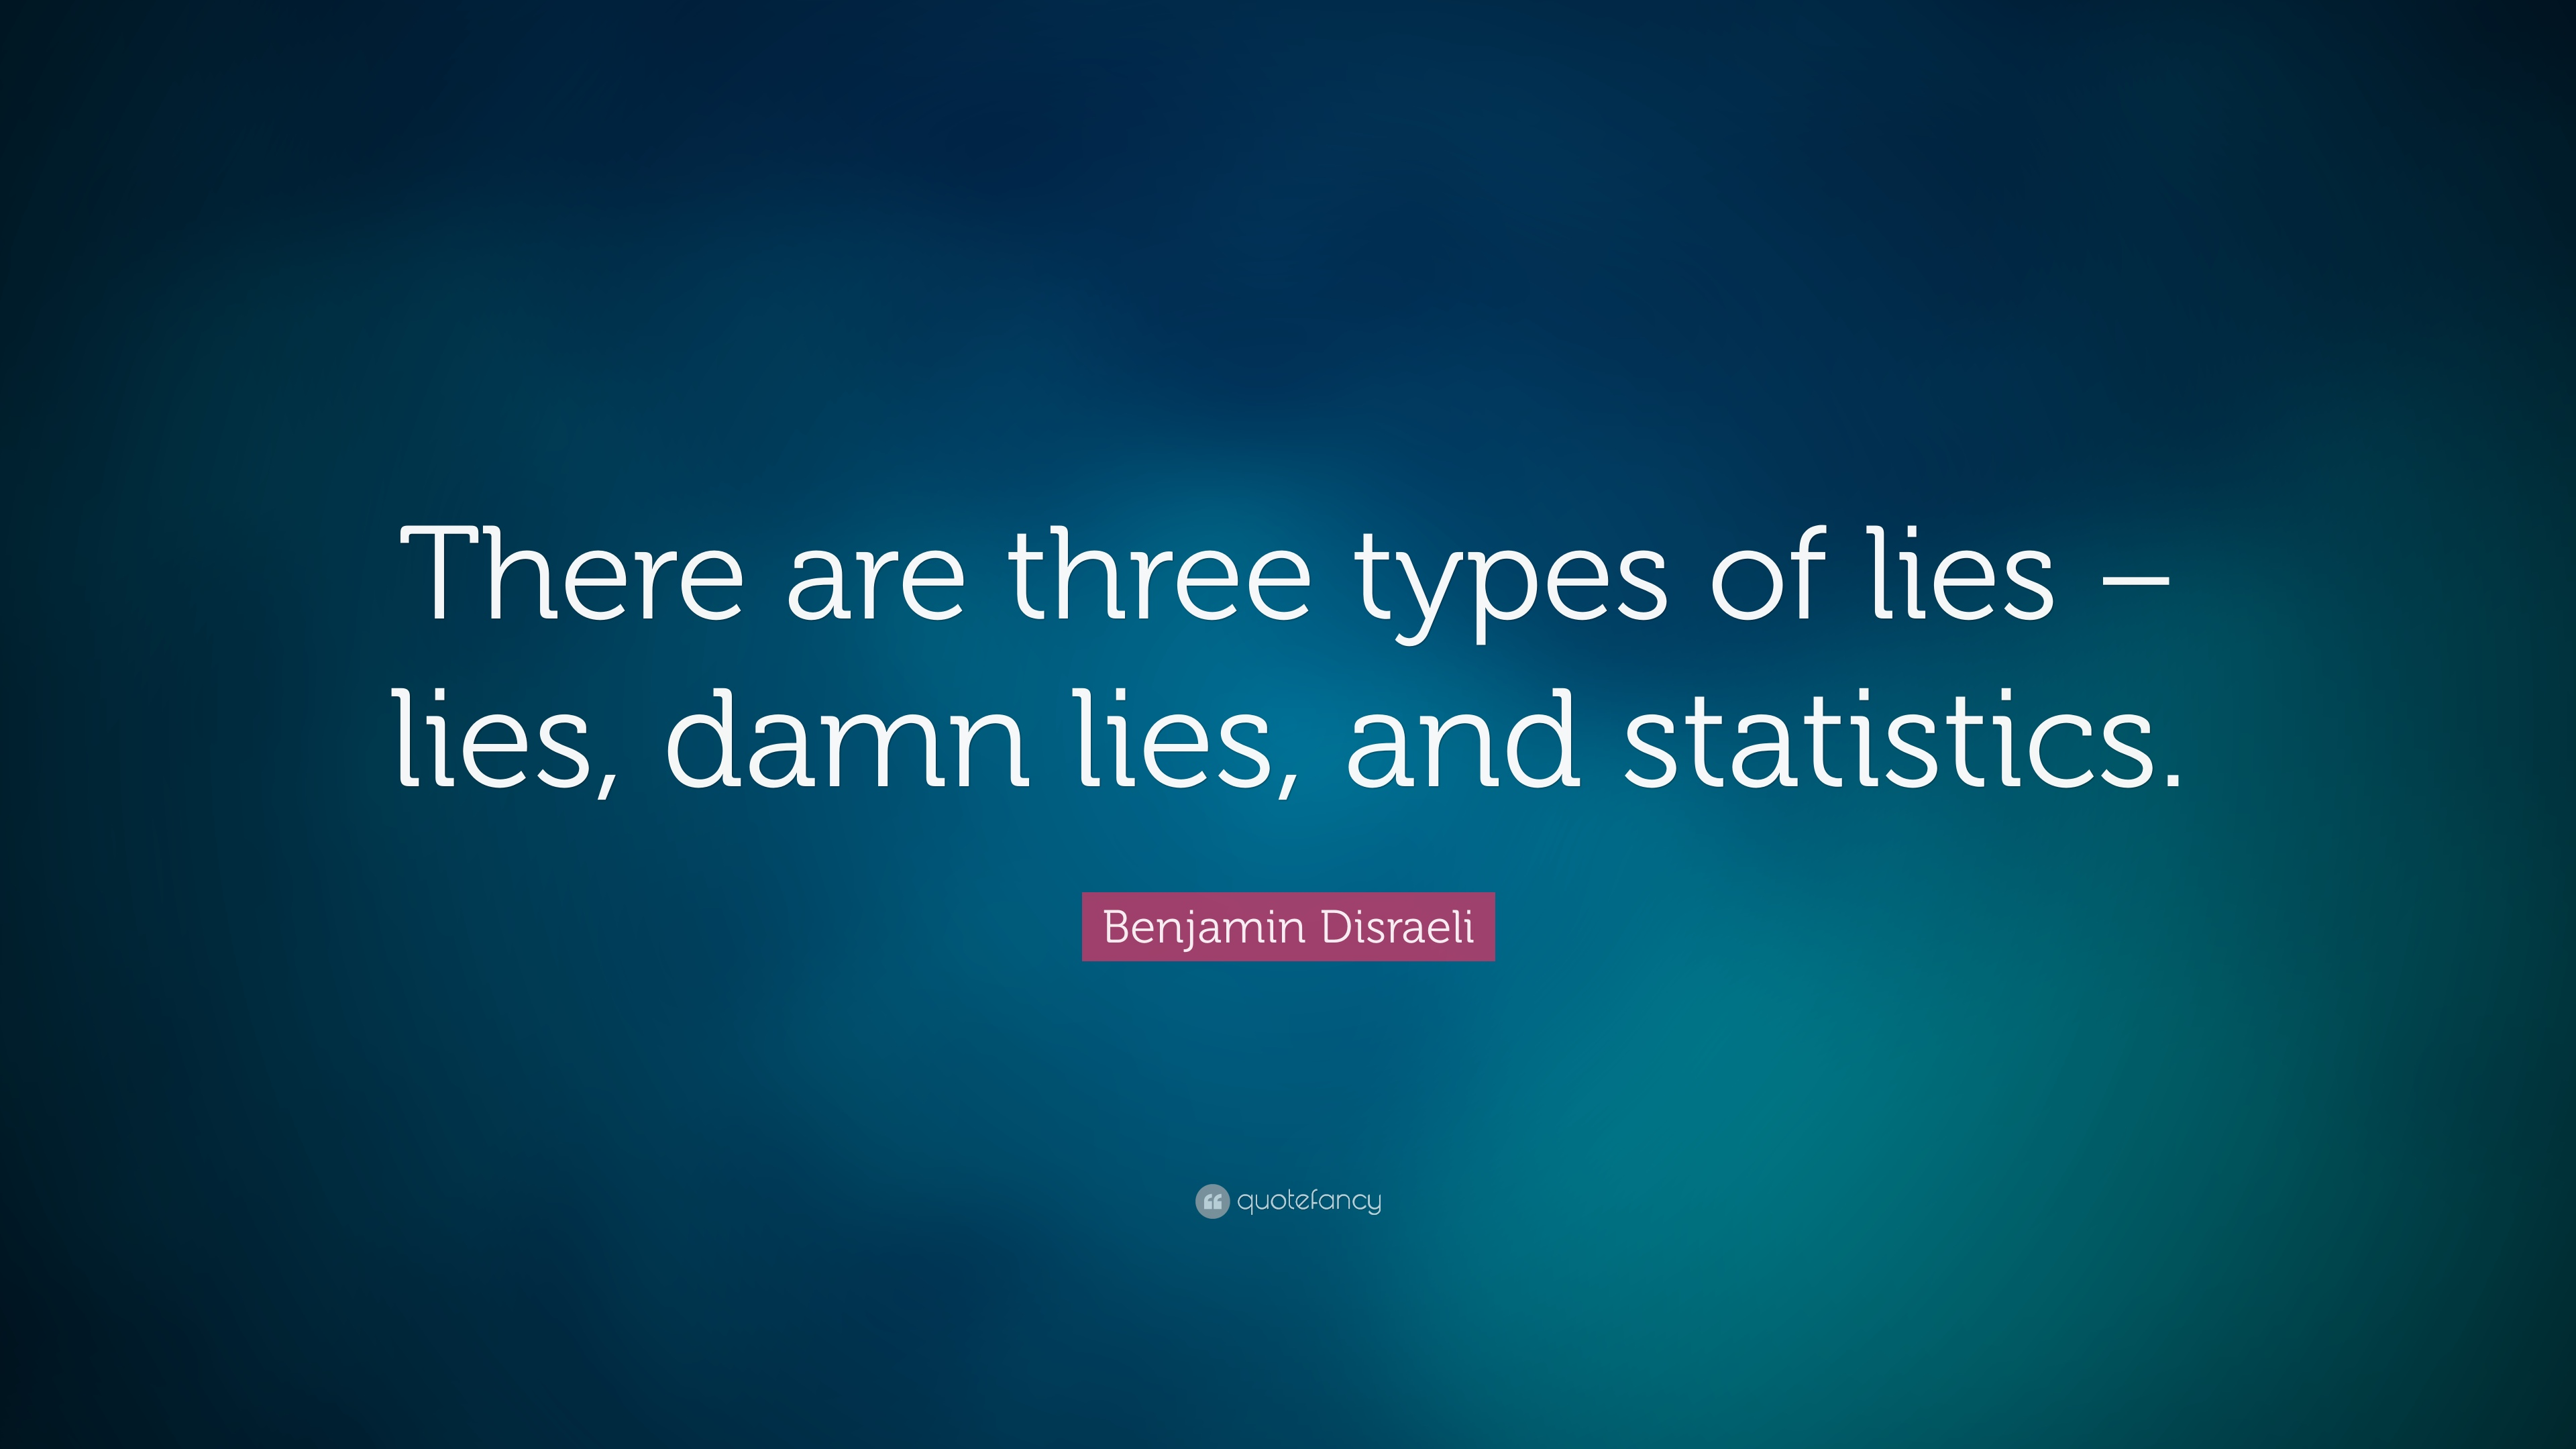 There are three kinds of lies: lies, damned lies, and statistics ...